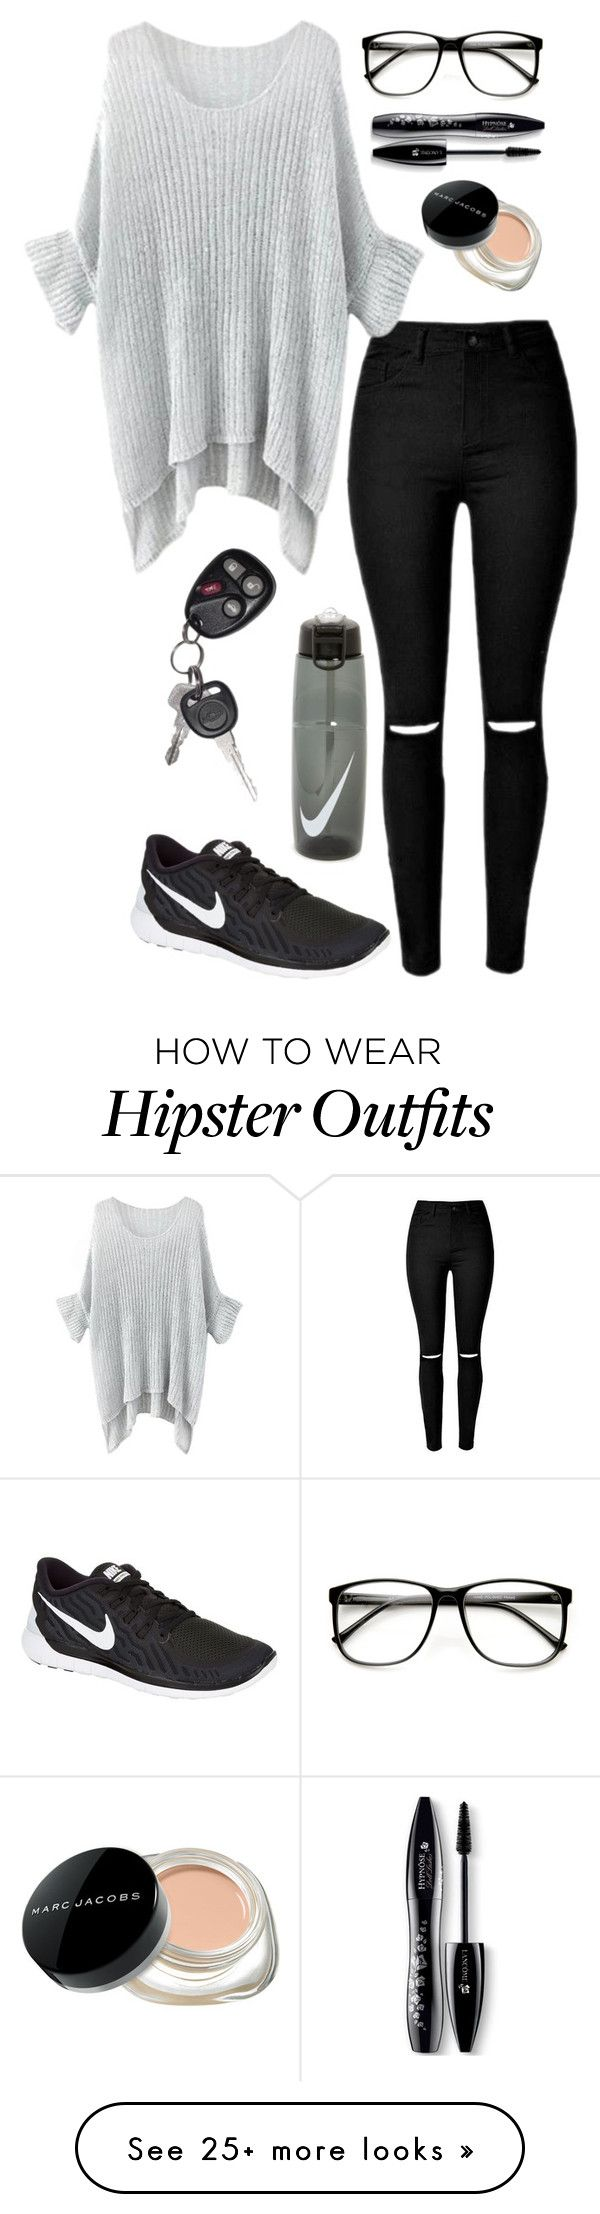 """Untitled #266"" by gummybear77 on Polyvore featuring NIKE, Marc Jacobs, Lancôme, women's clothing, women, female, woman, misses and juniors"